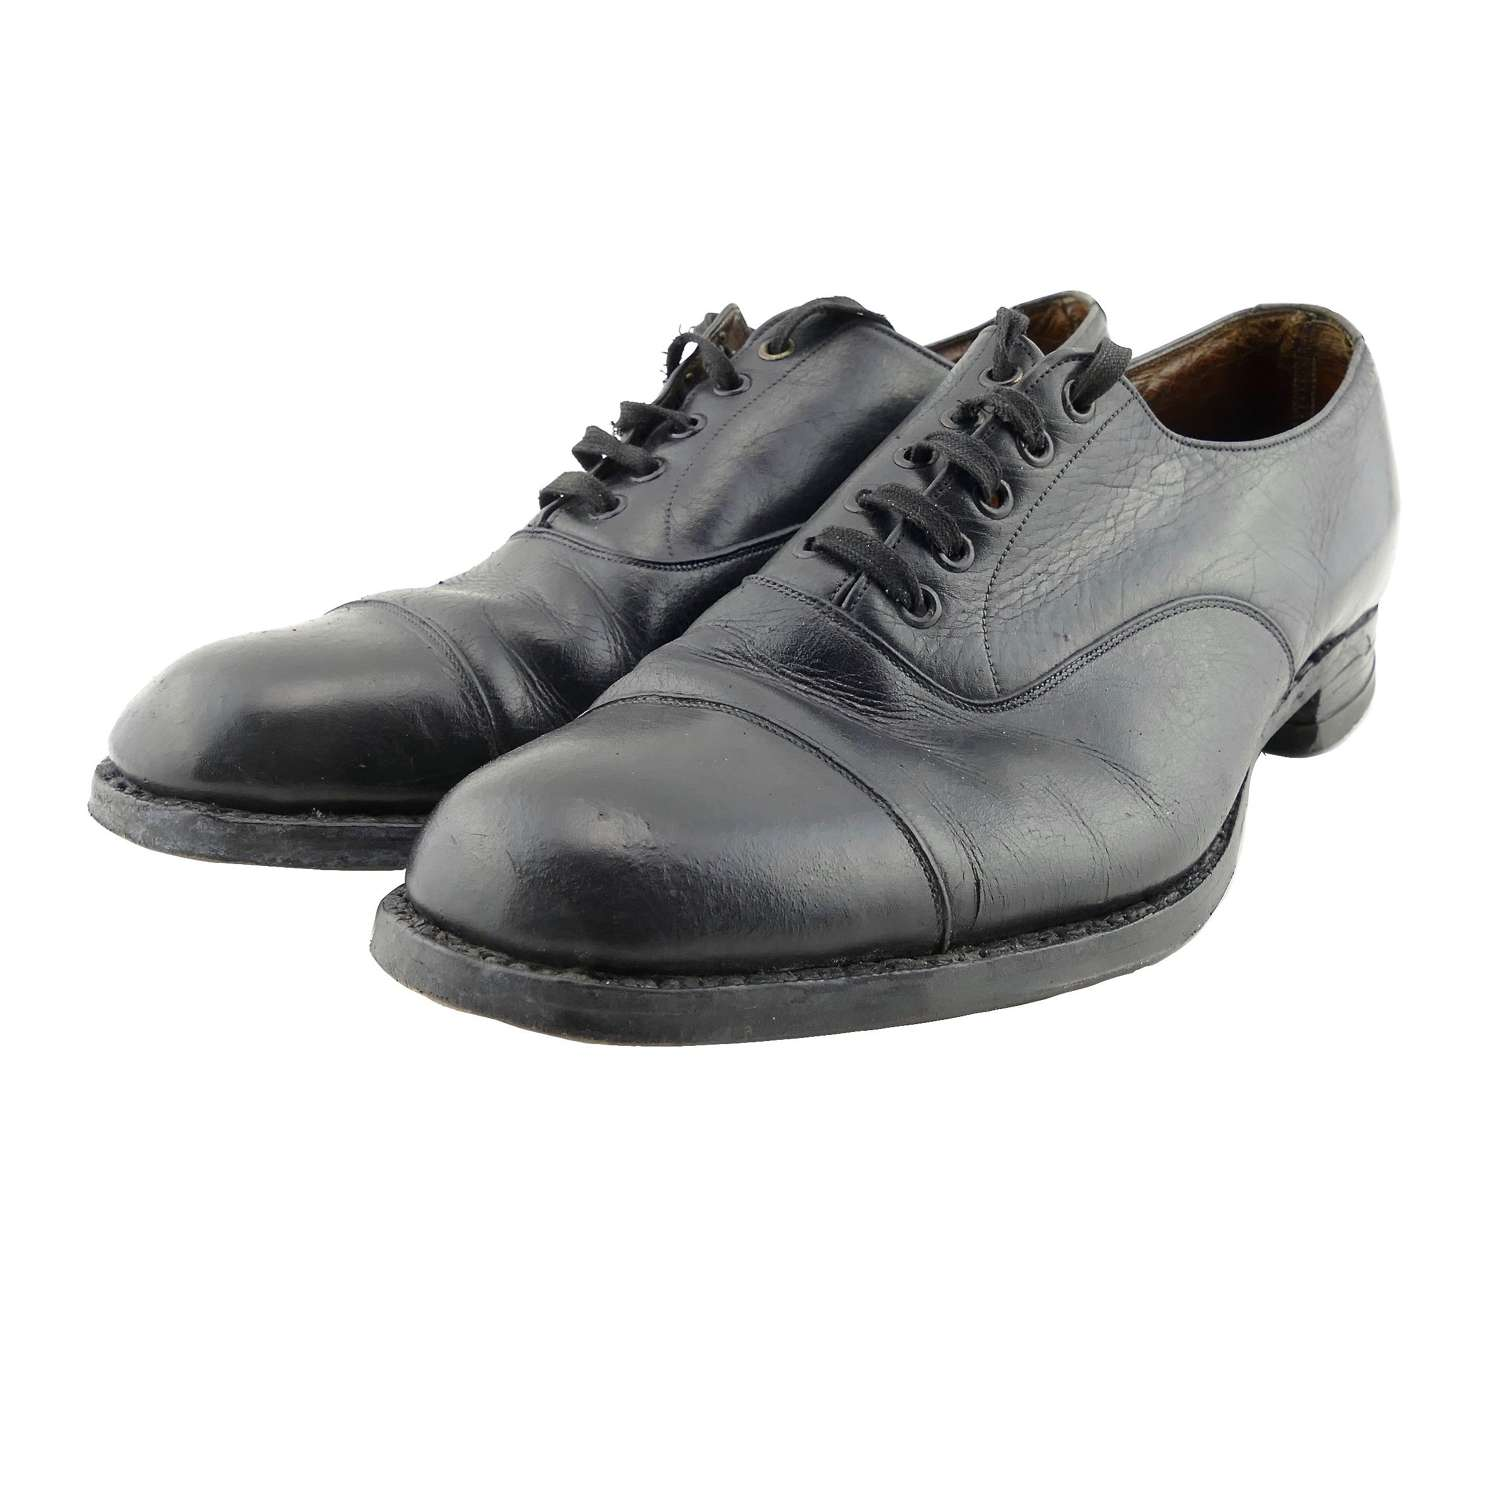 RAF service dress issue shoes